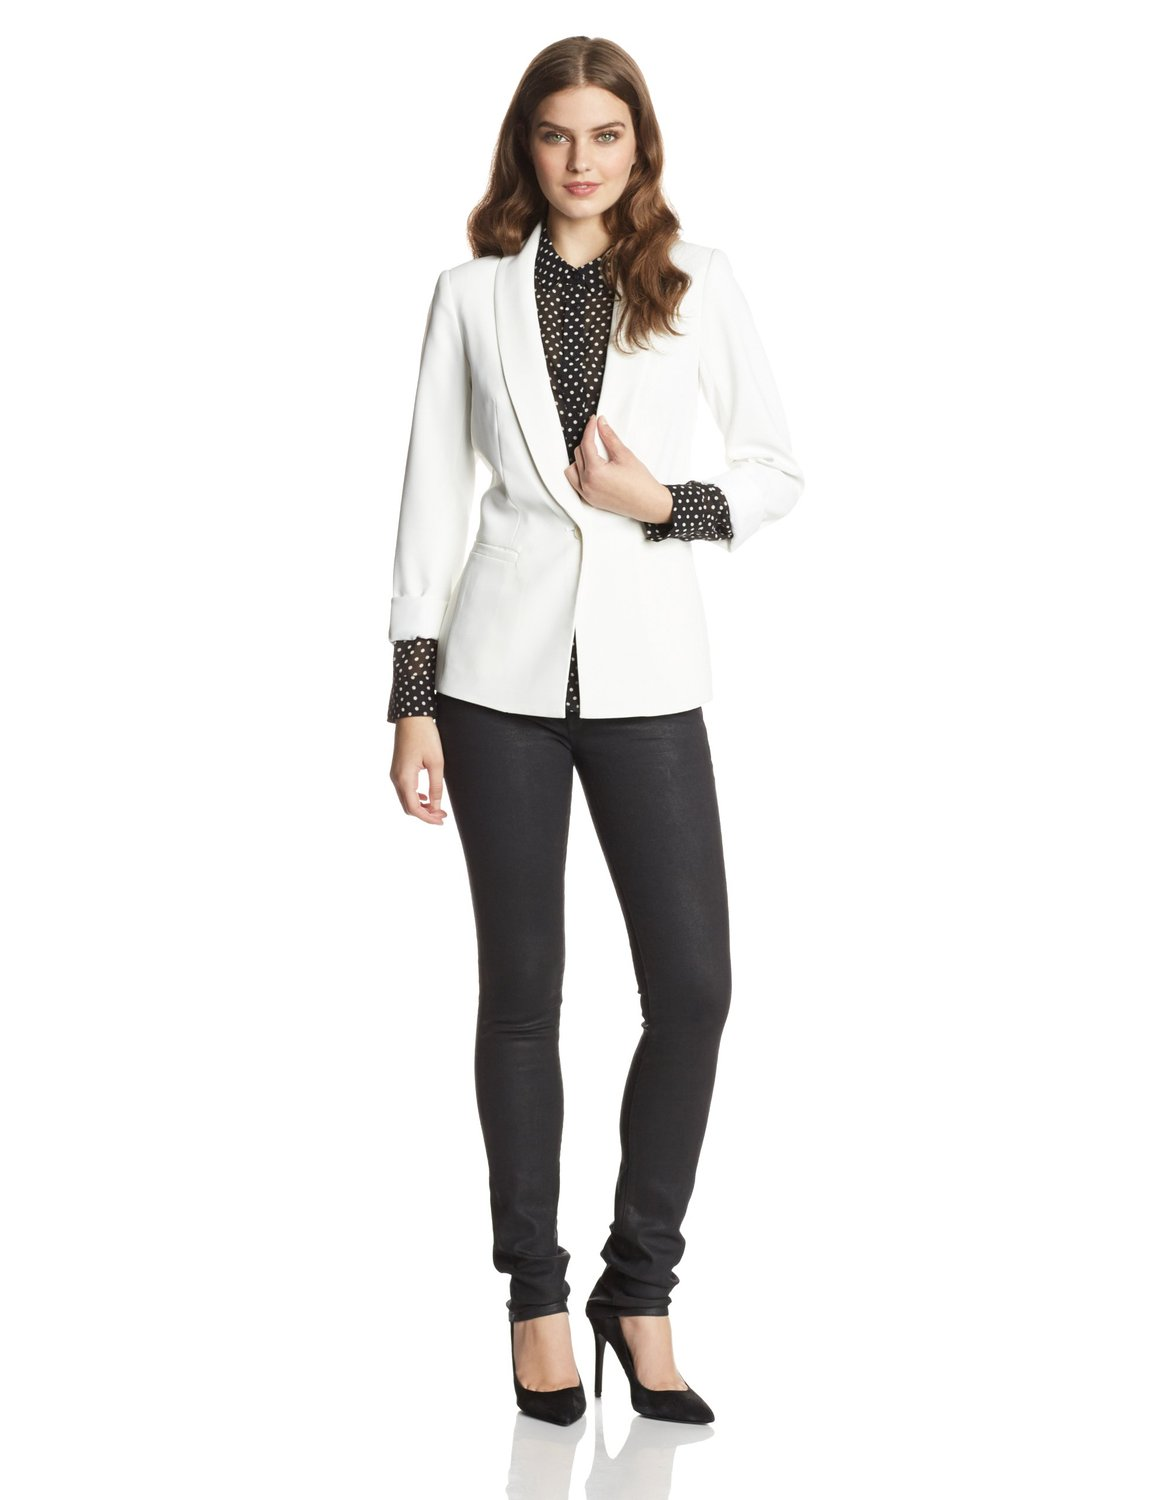 Trina turk women's alexa crepe blazer at amazon women's clothing store: